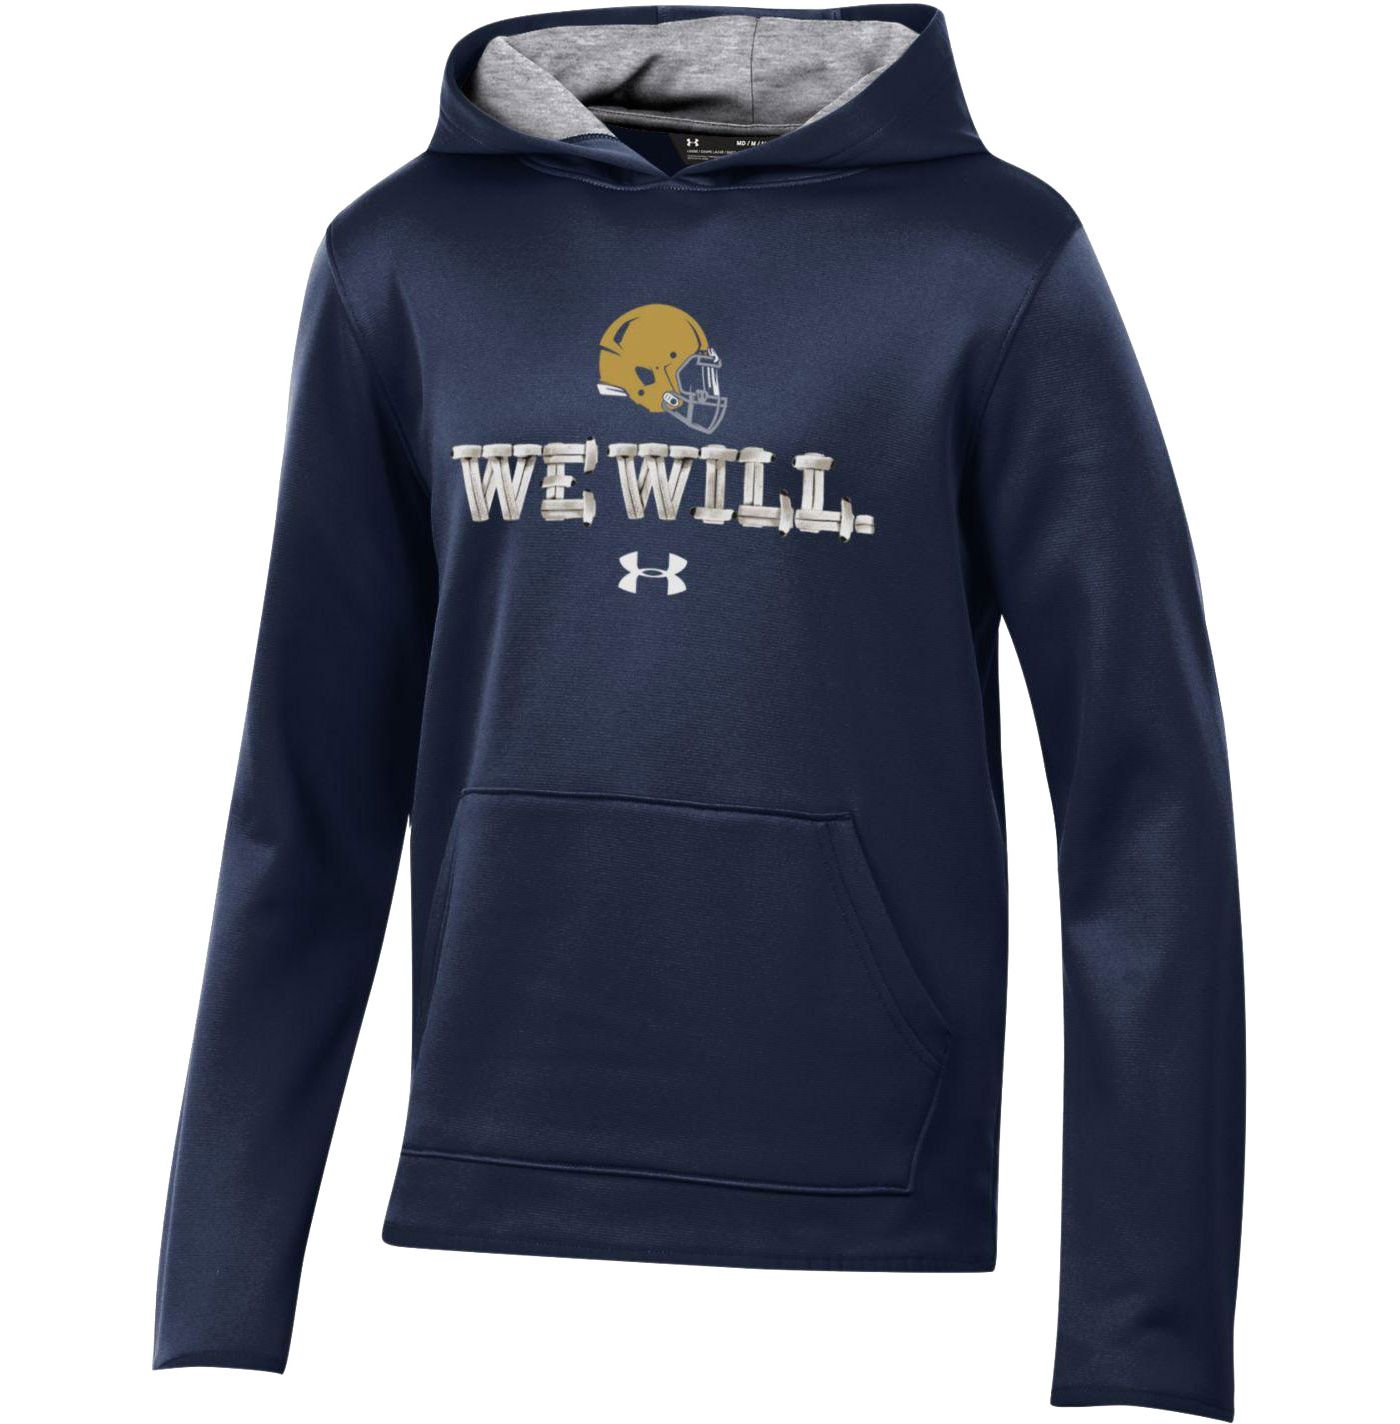 Under Armour Youth Notre Dame Fighting Irish Navy 'We Will' Armourfleece Performance Football Hoodie